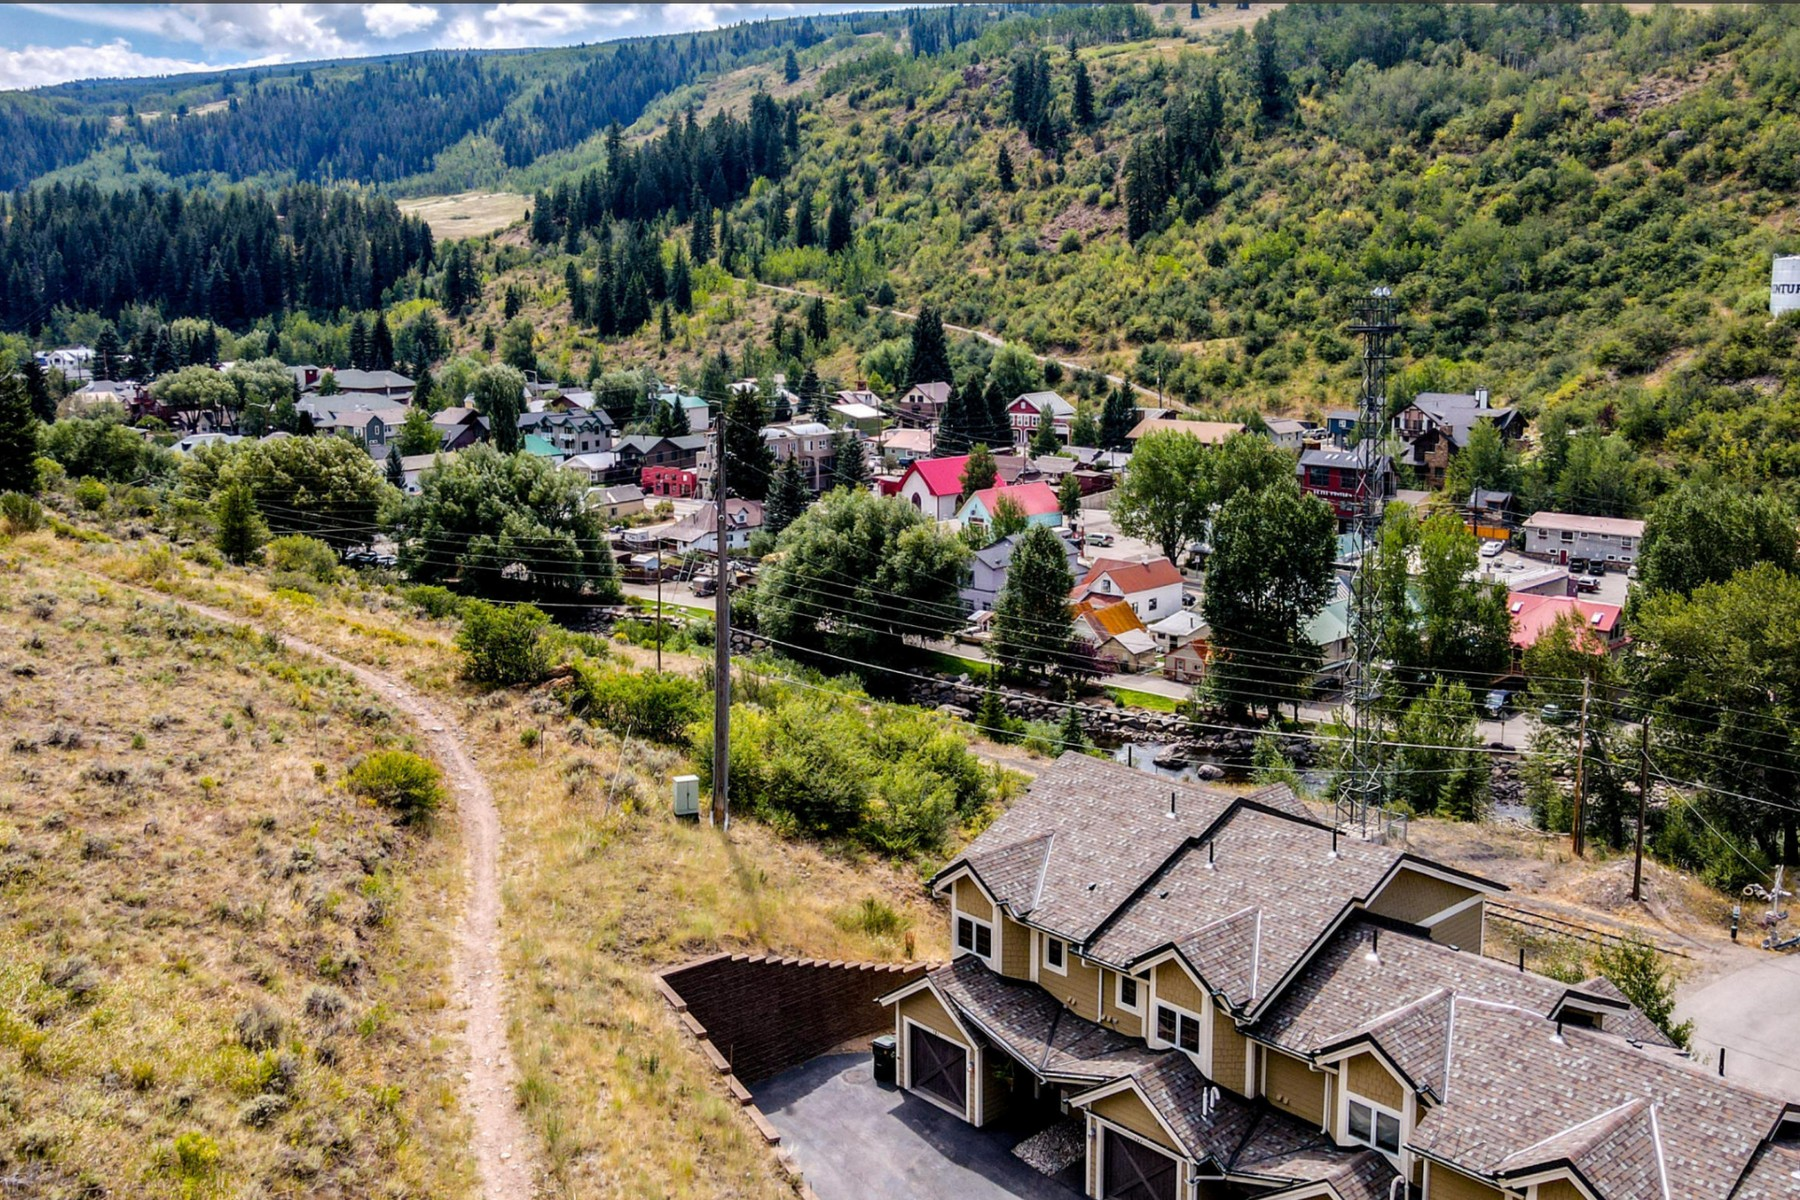 townhouses للـ Sale في Minturn Towne Homes 103 Lions Lane, Minturn, Colorado 81645 United States